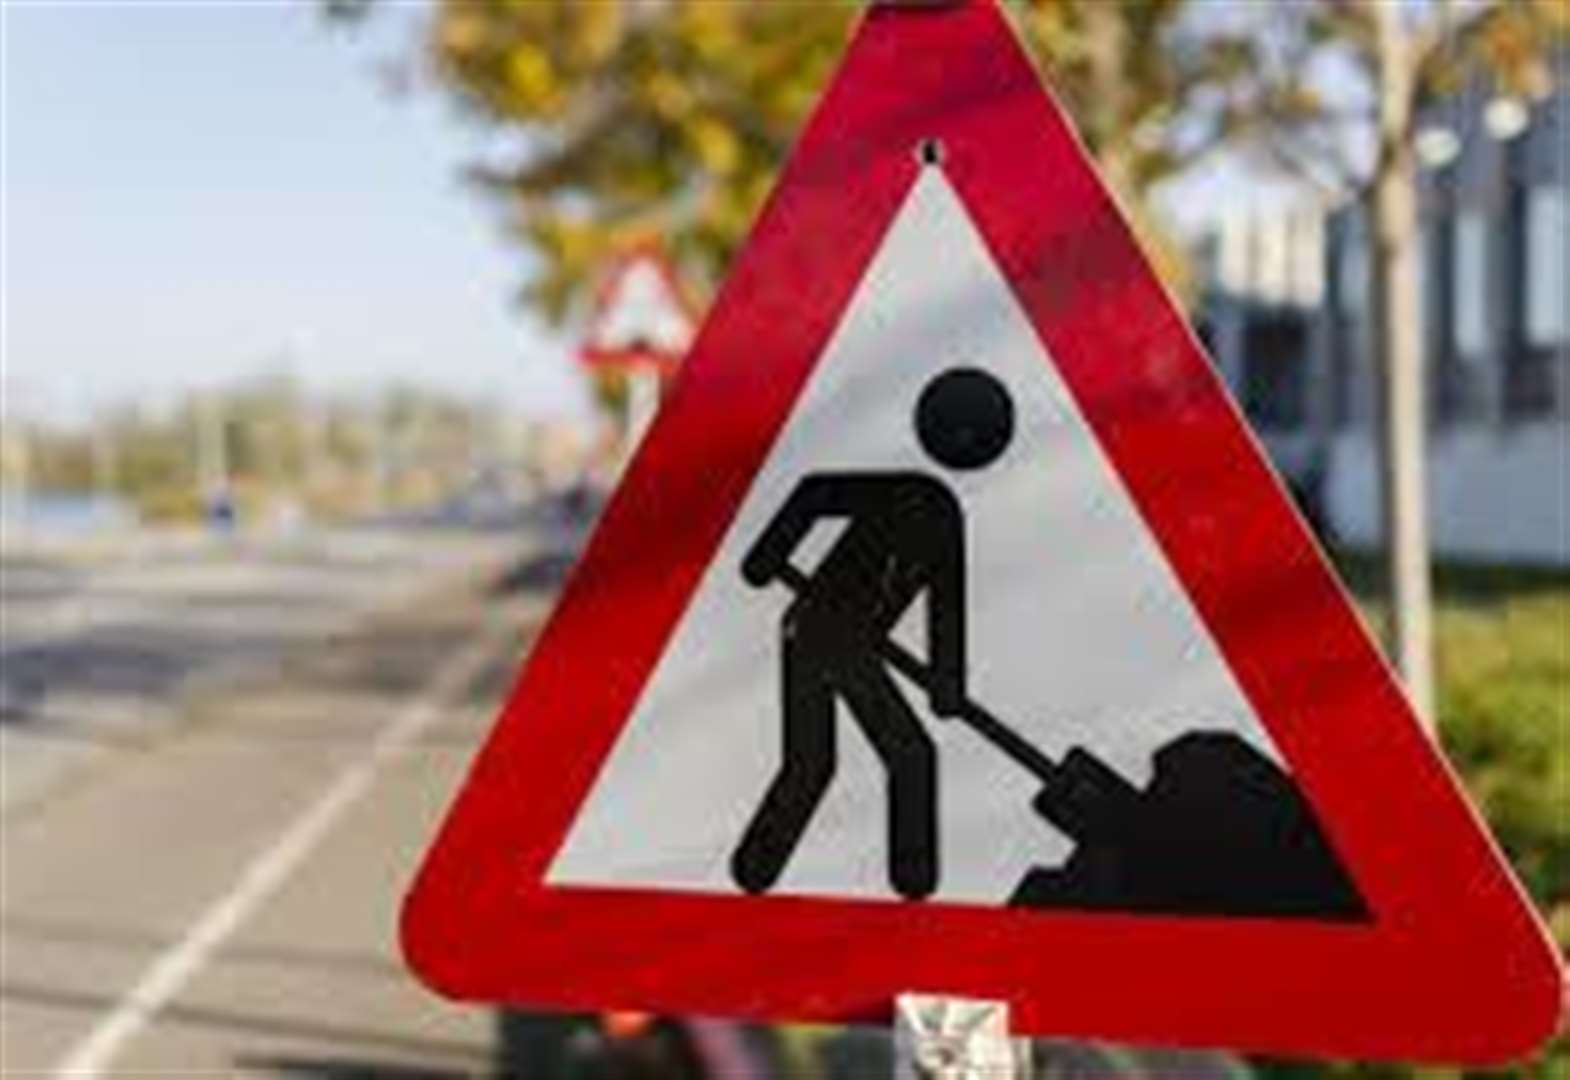 Rattlesden road repairs: All you need to know